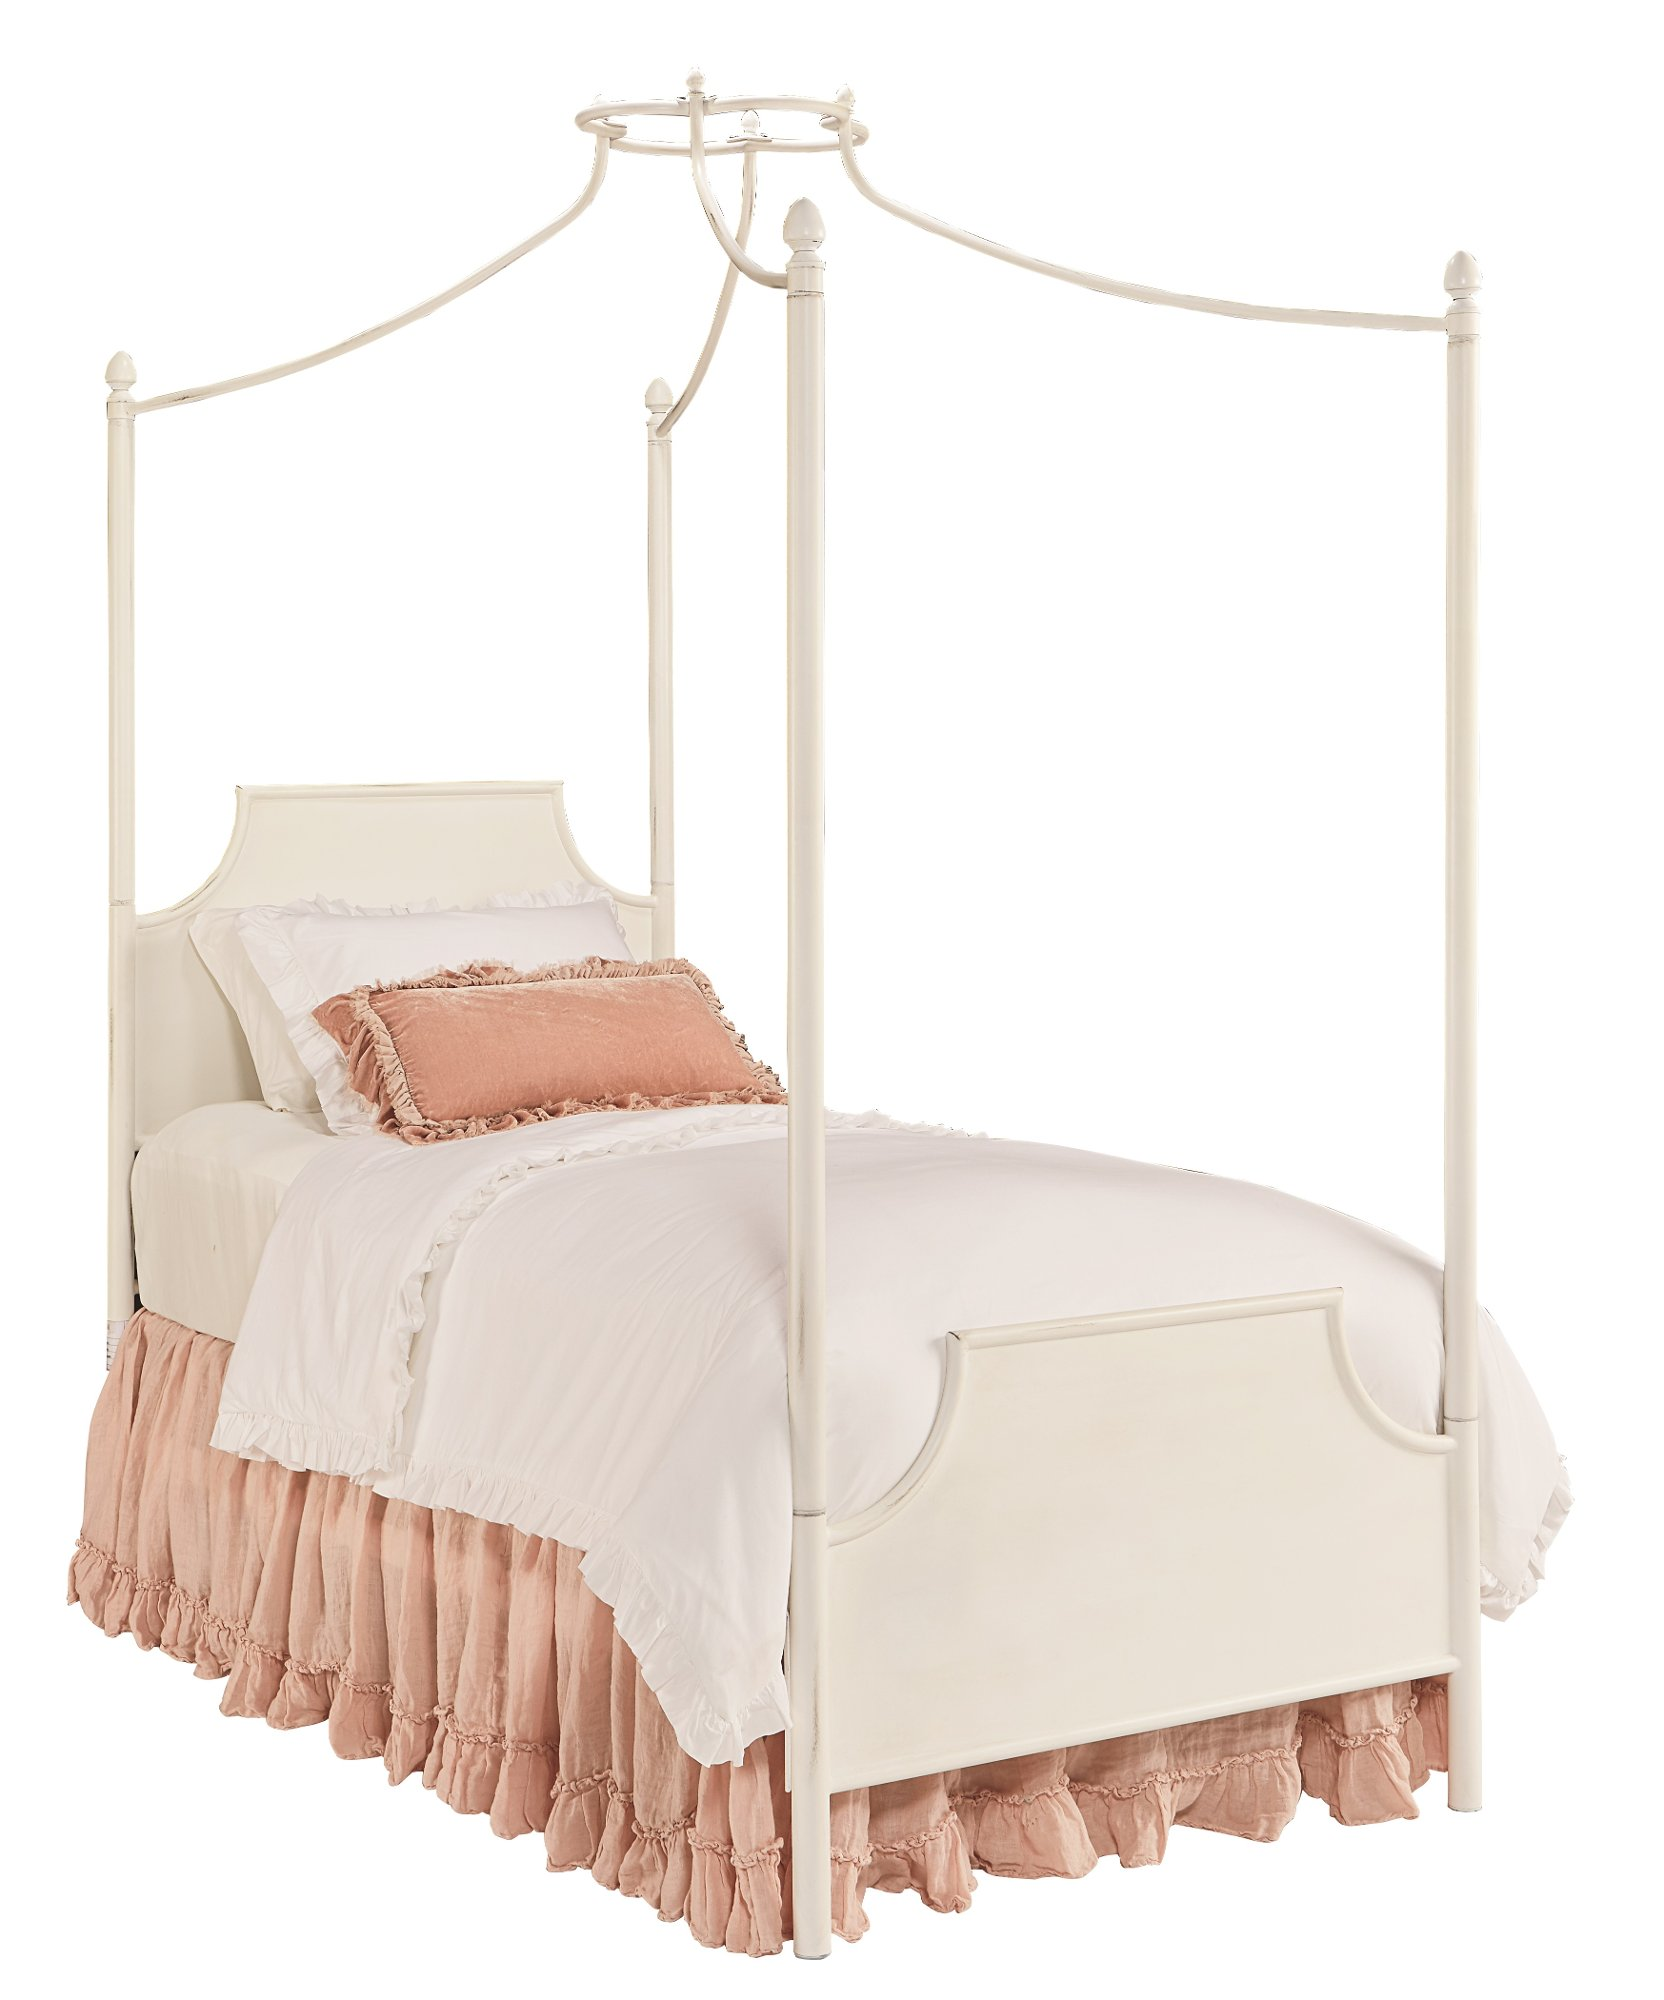 Magnolia Home Furniture White Twin 6 Piece Canopy Bedroom